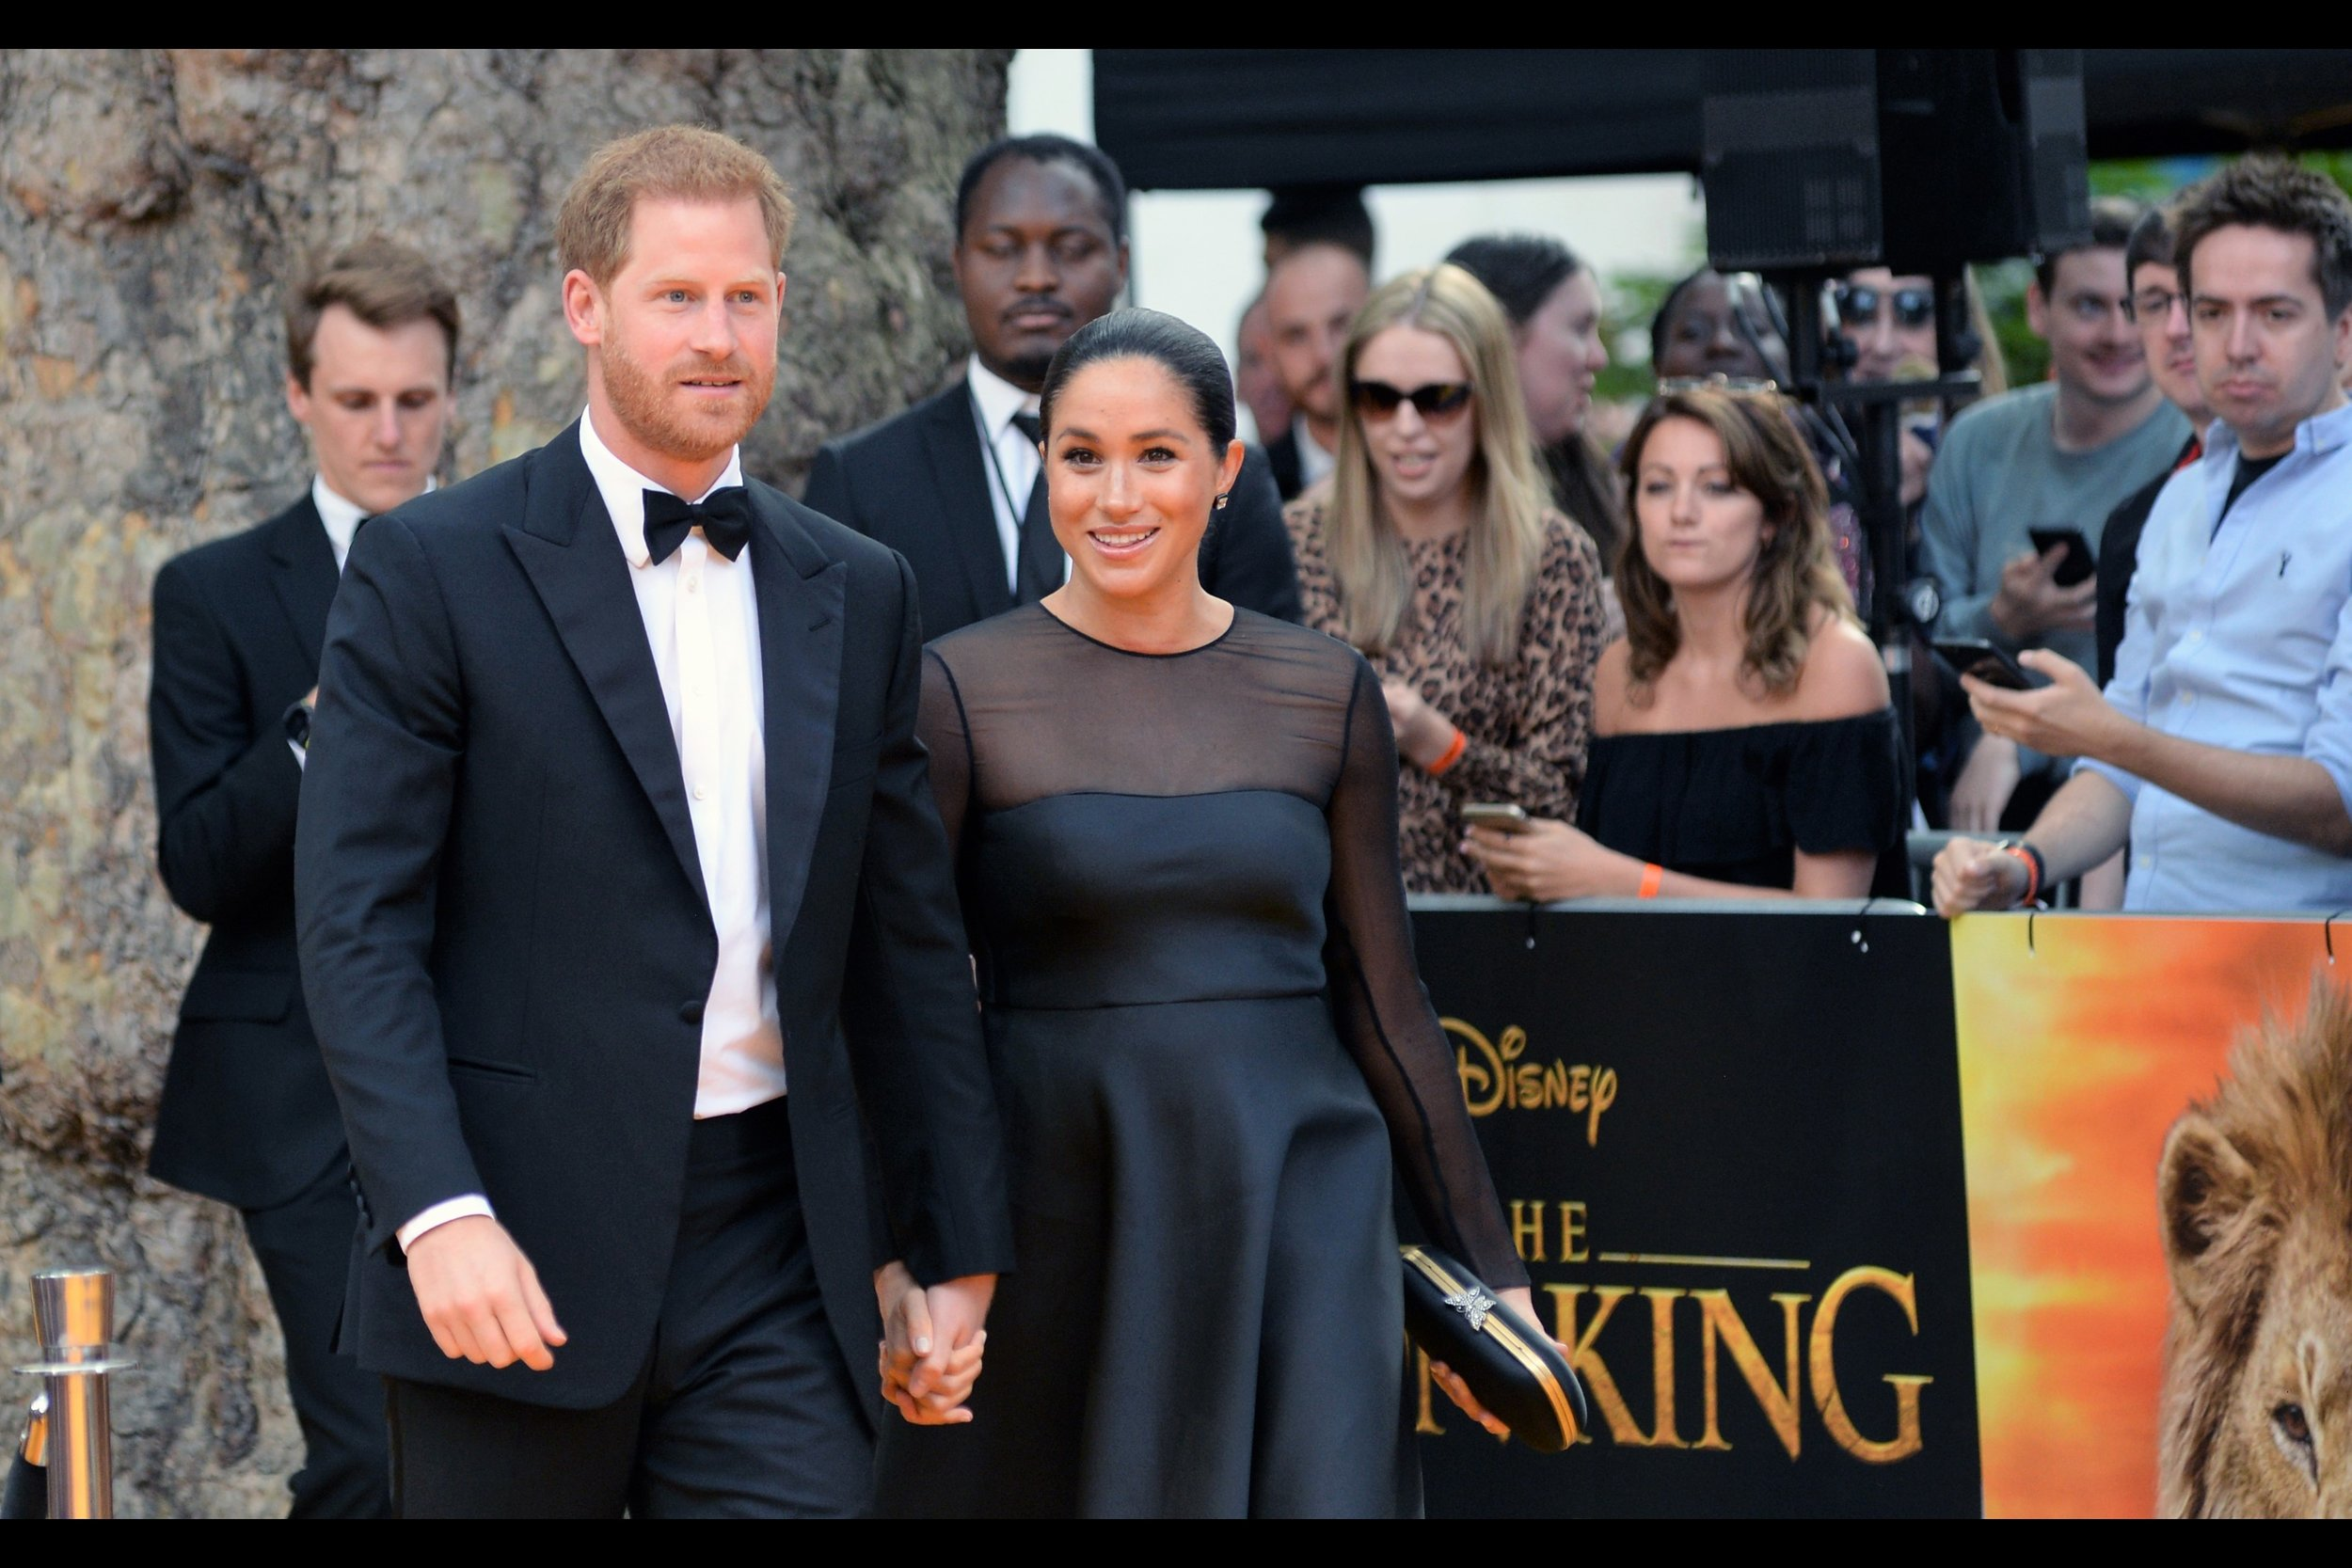 It's the    Lion King (2019)    Premiere - feat. Harry! Meghan! Hans! Pharrell! Jon! Florence! and others not able to be photographed!